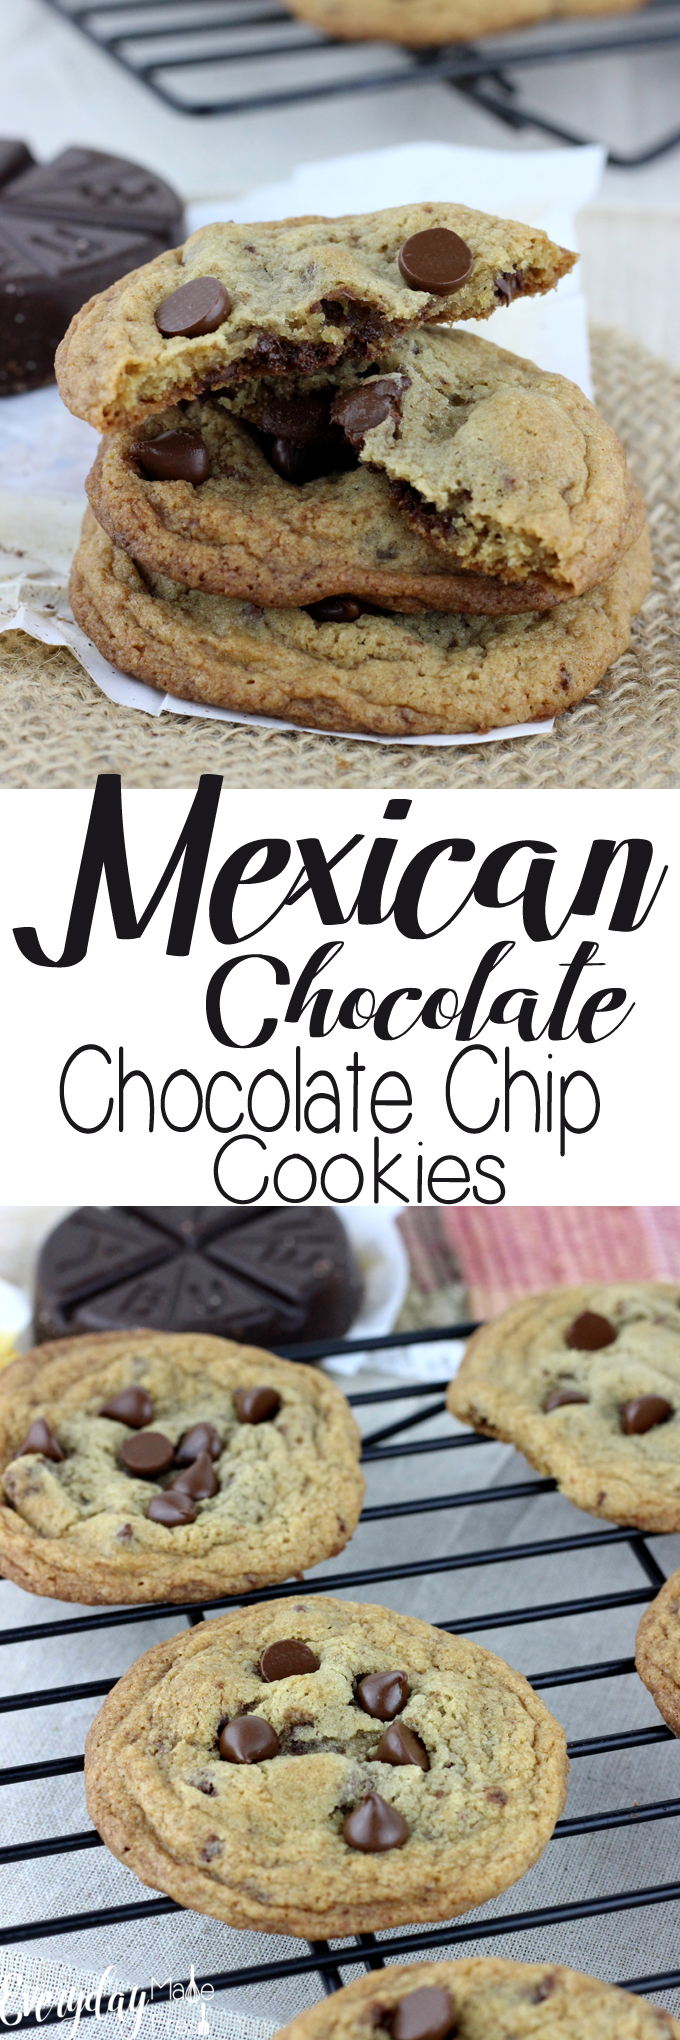 These Mexican Chocolate Chocolate Chip Cookies are the perfect blend of sweet and spicy.  You'll love the crispy edges and chewy centers. | EverydayMadeFresh.com